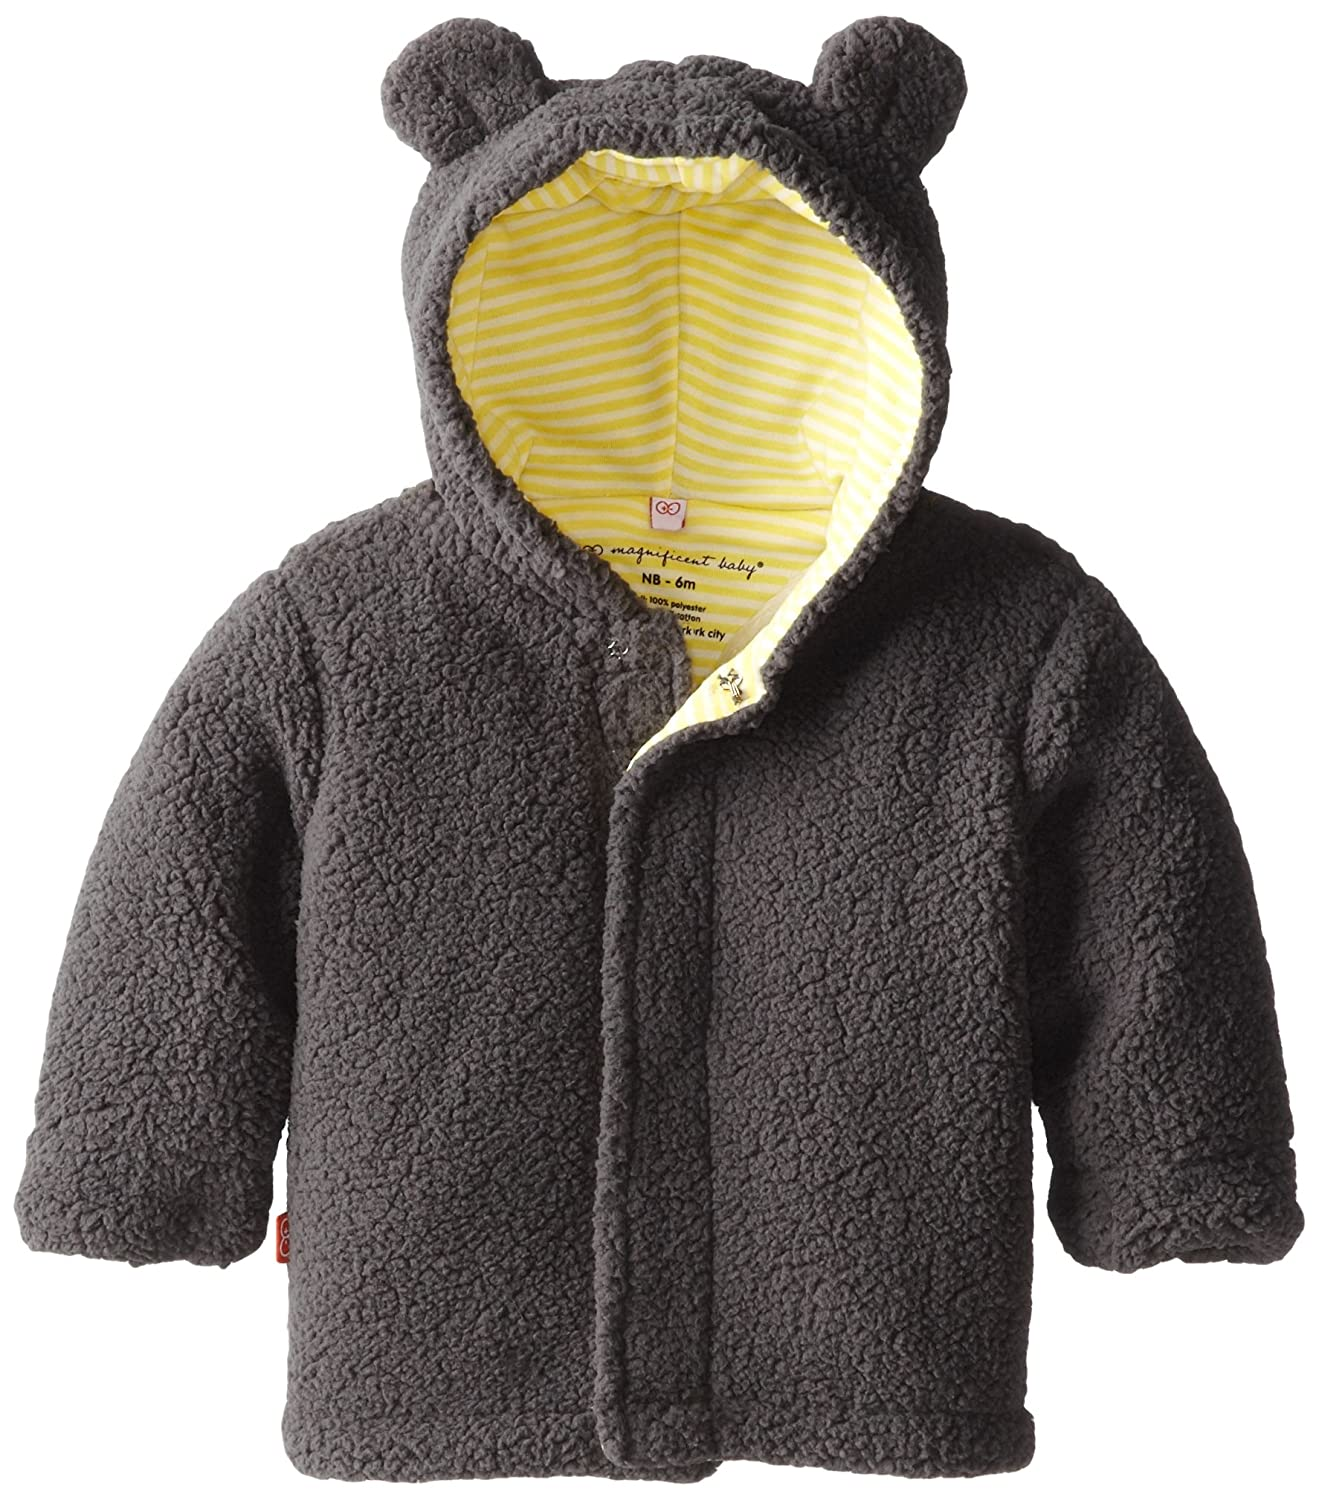 Magnificent Baby Unisex-Baby Infant Fleece Bear Jacket, Ash/Lemon, 0-6 Months 5039-U